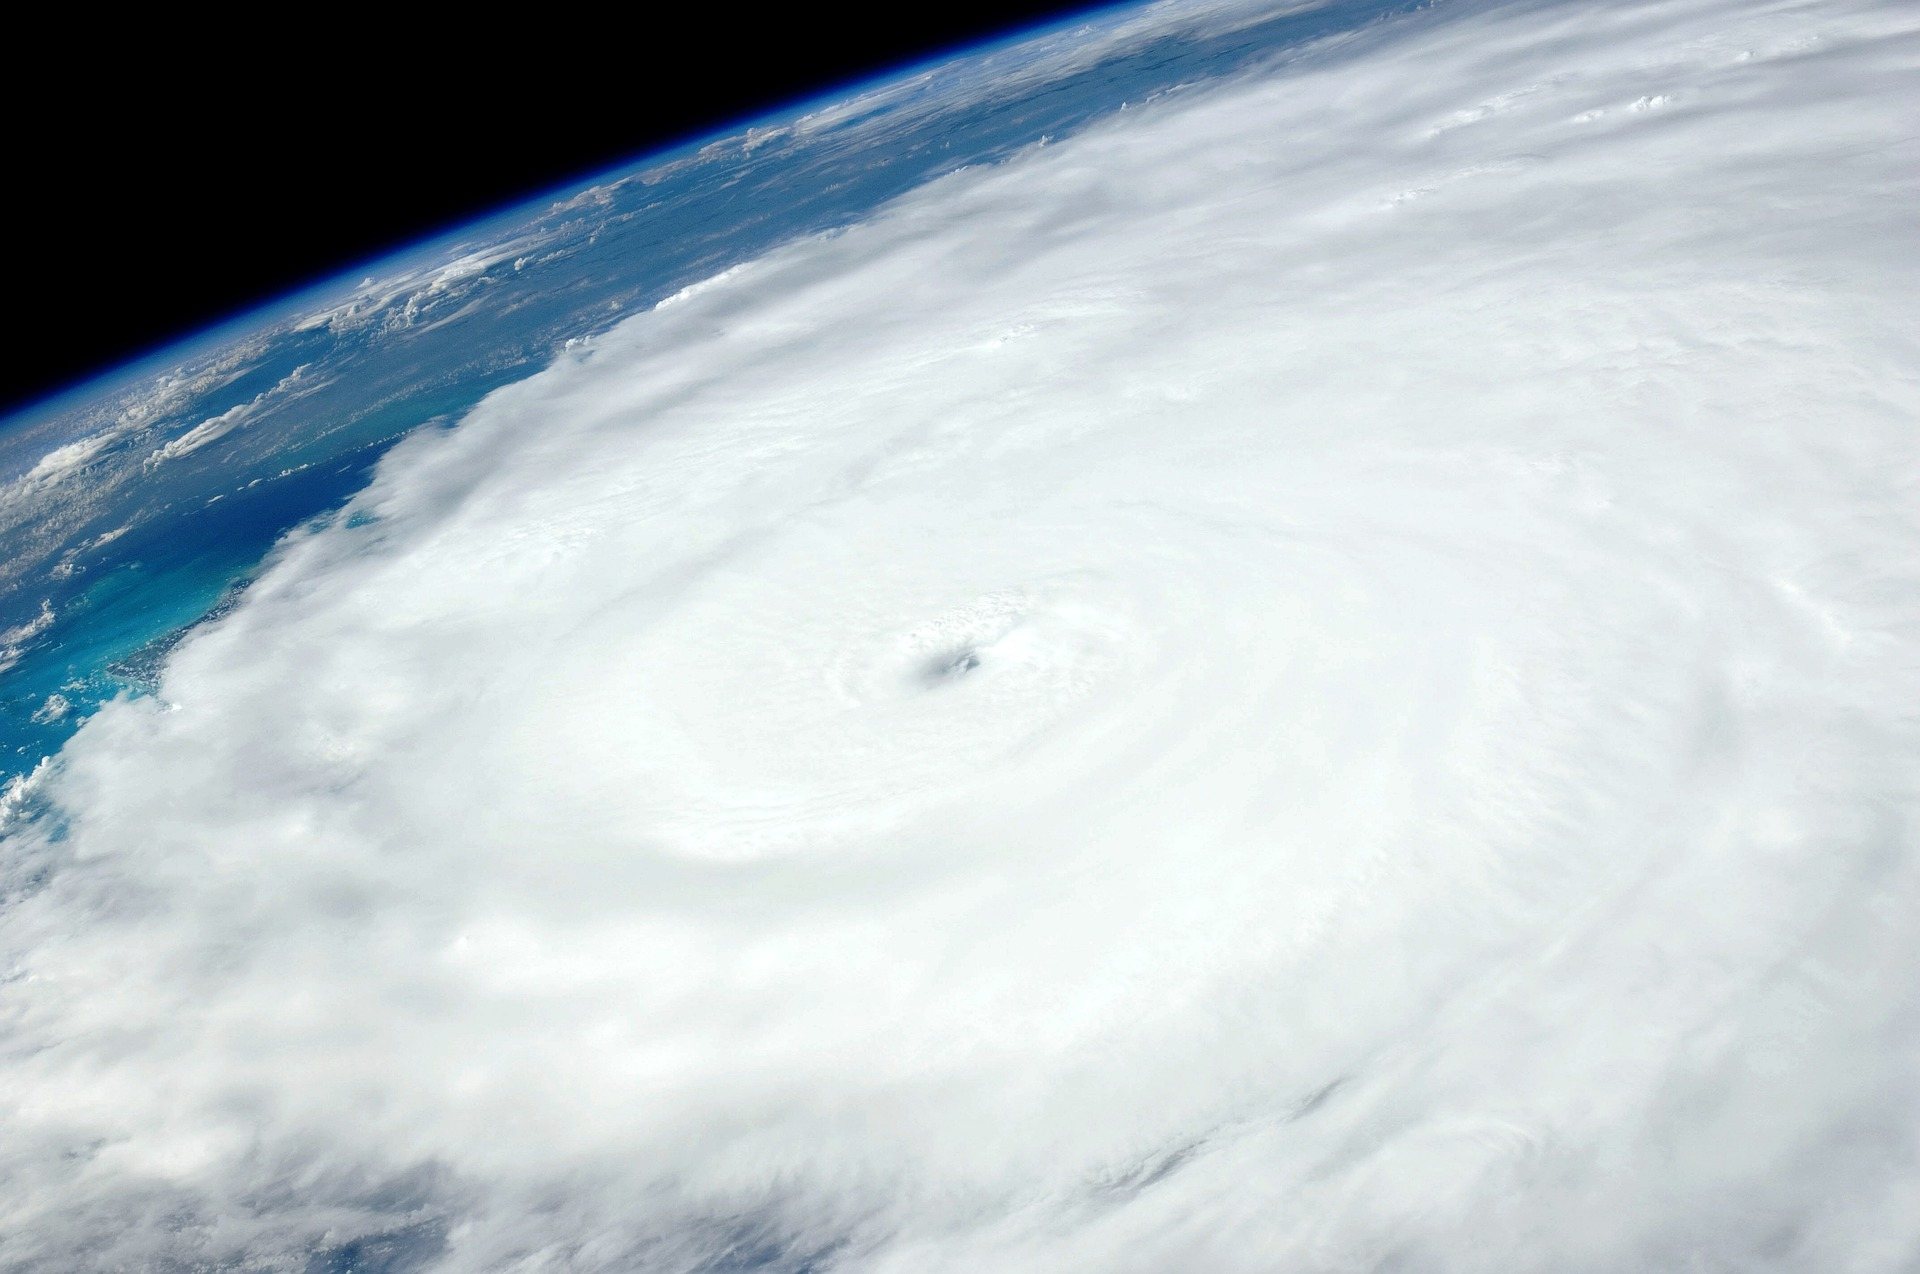 Hurricane Preparedness: Your Bathroom May Be Your Best Spot to Ride Out a Hurricane